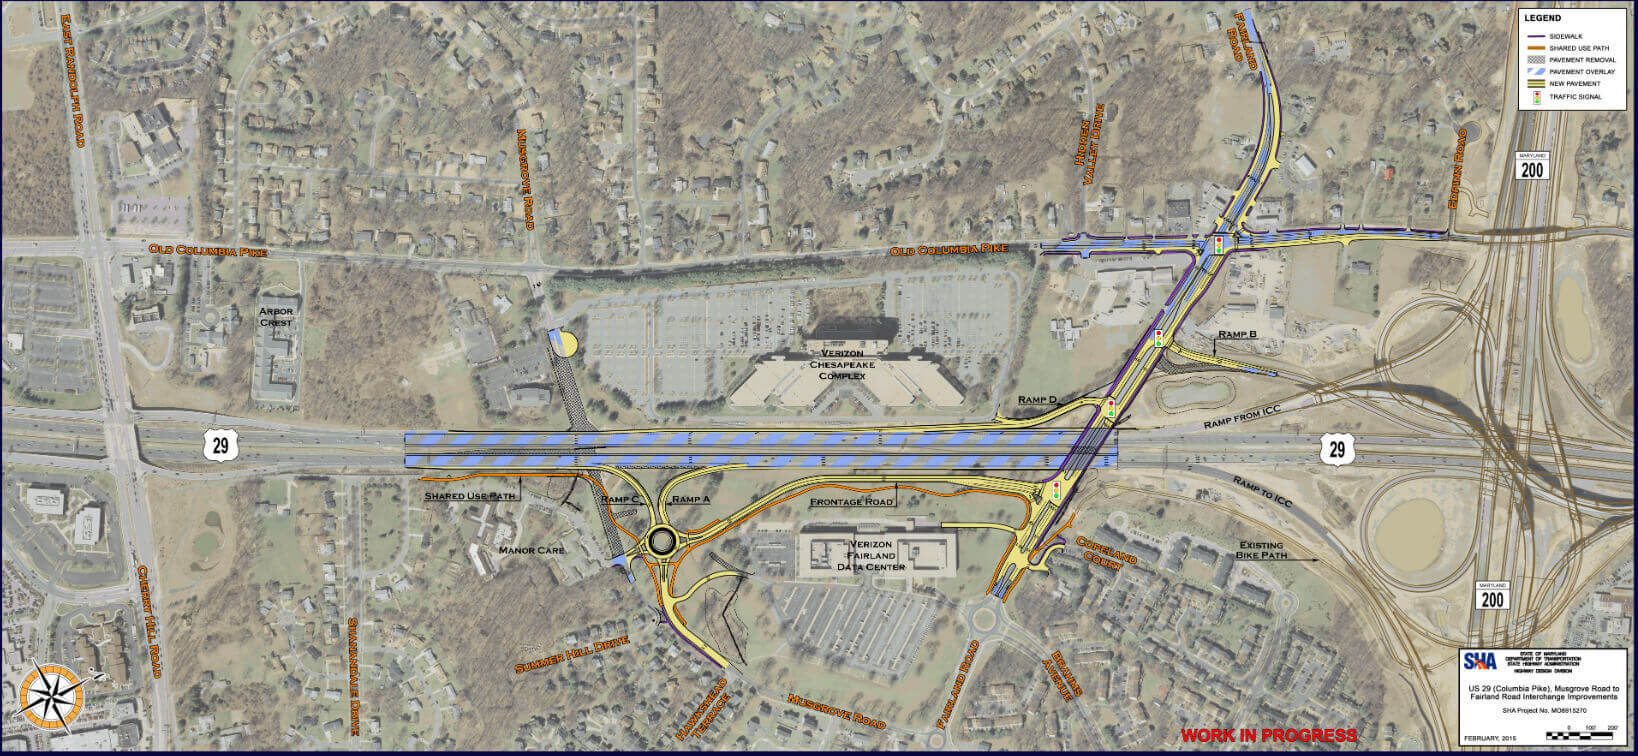 US-29-Columbia-Pike-Improvement-Project-from-Musgrove-Rd-to-Fairland-Rd-Montgomery-County-min